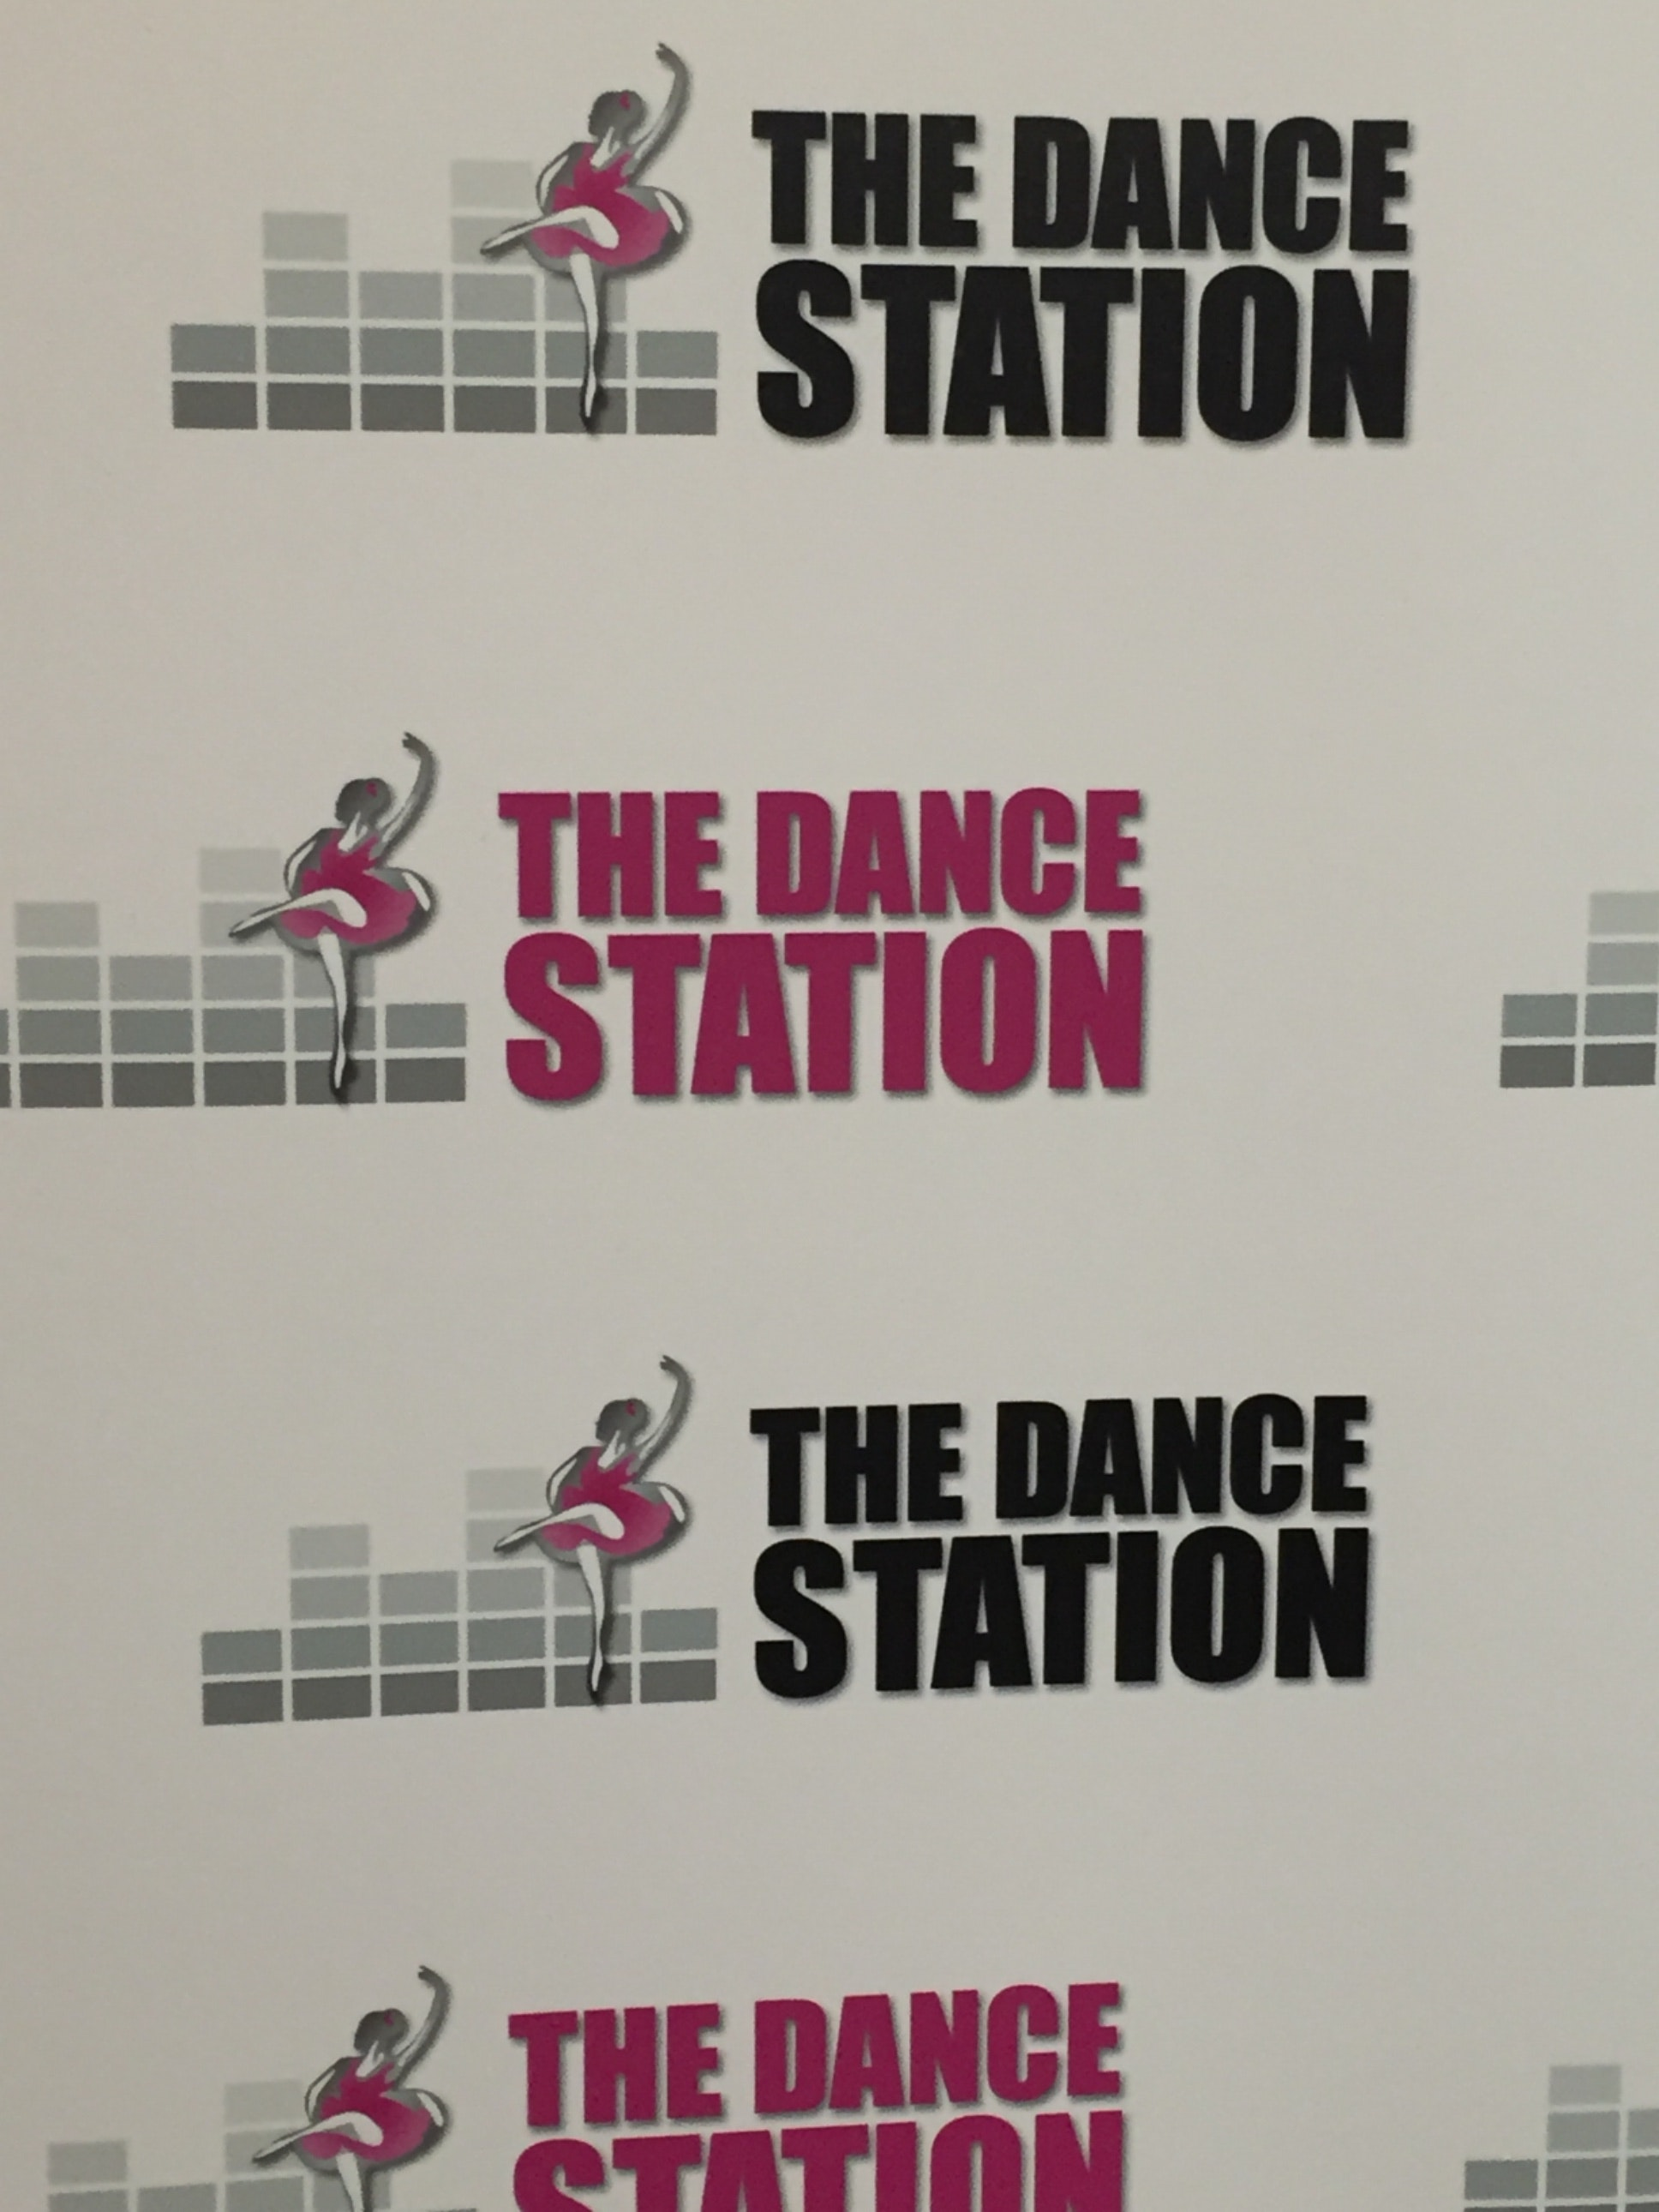 The Dance Station - Fundraising Committee